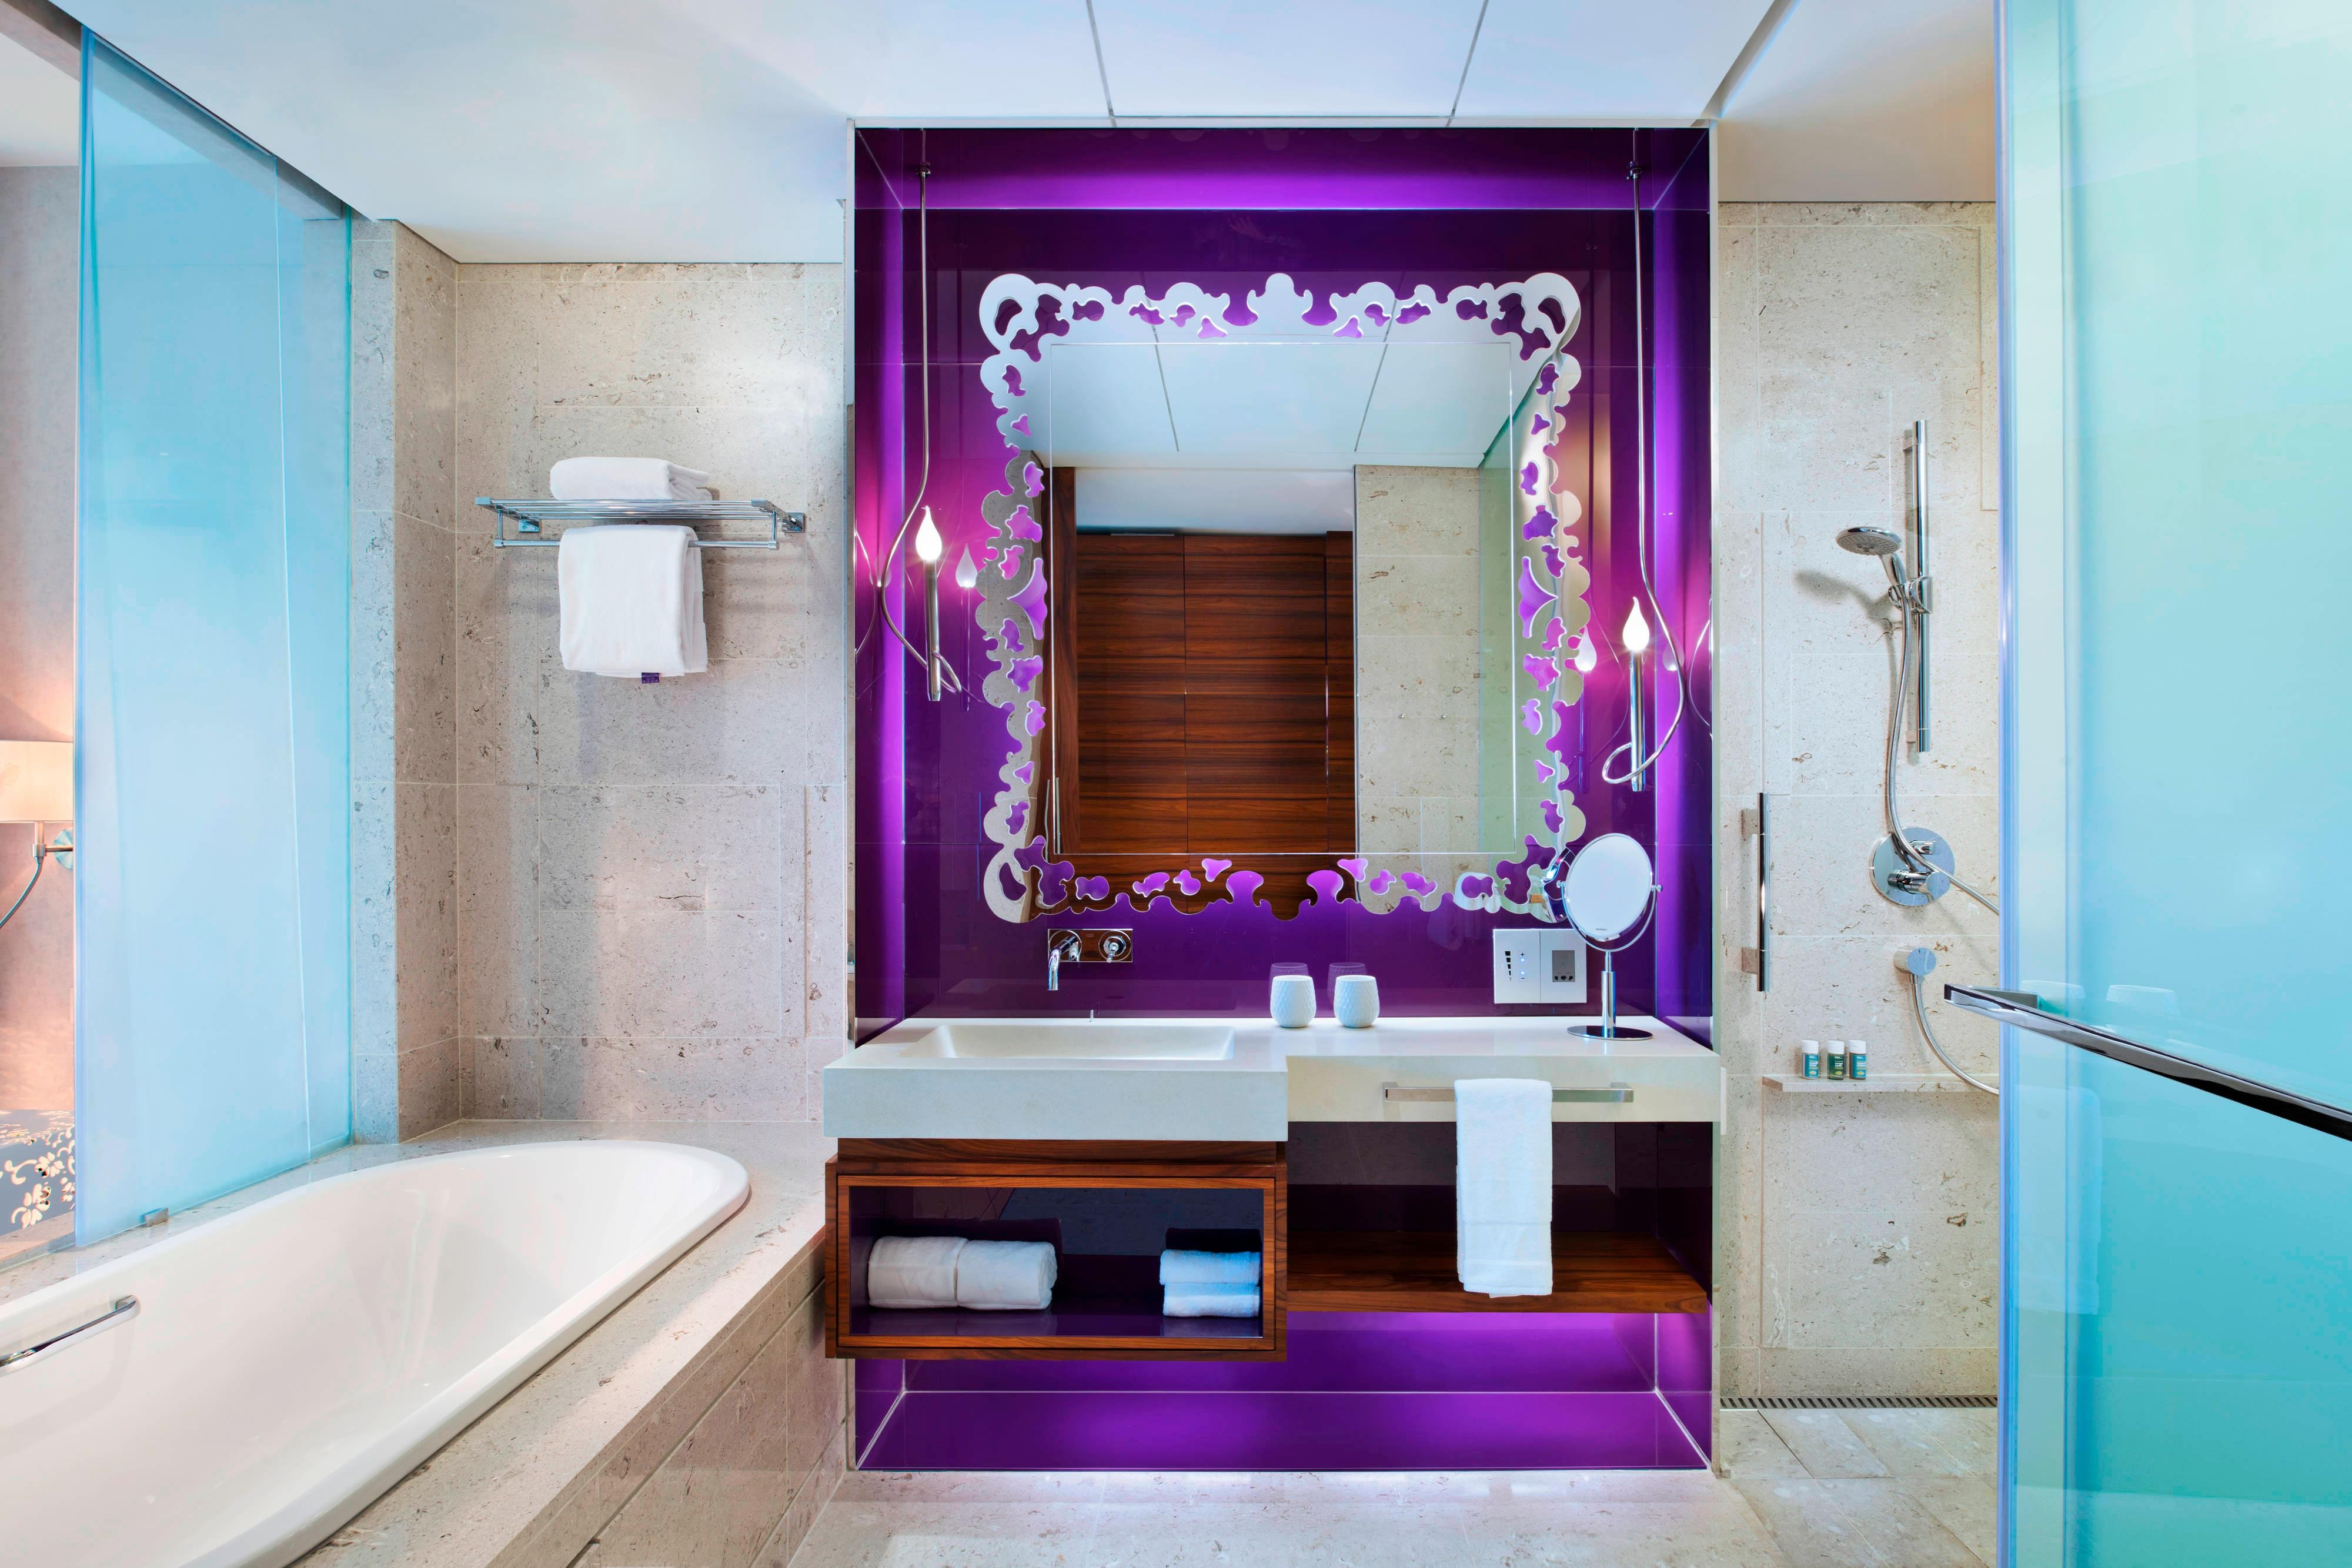 Fabulous Room - Bathroom